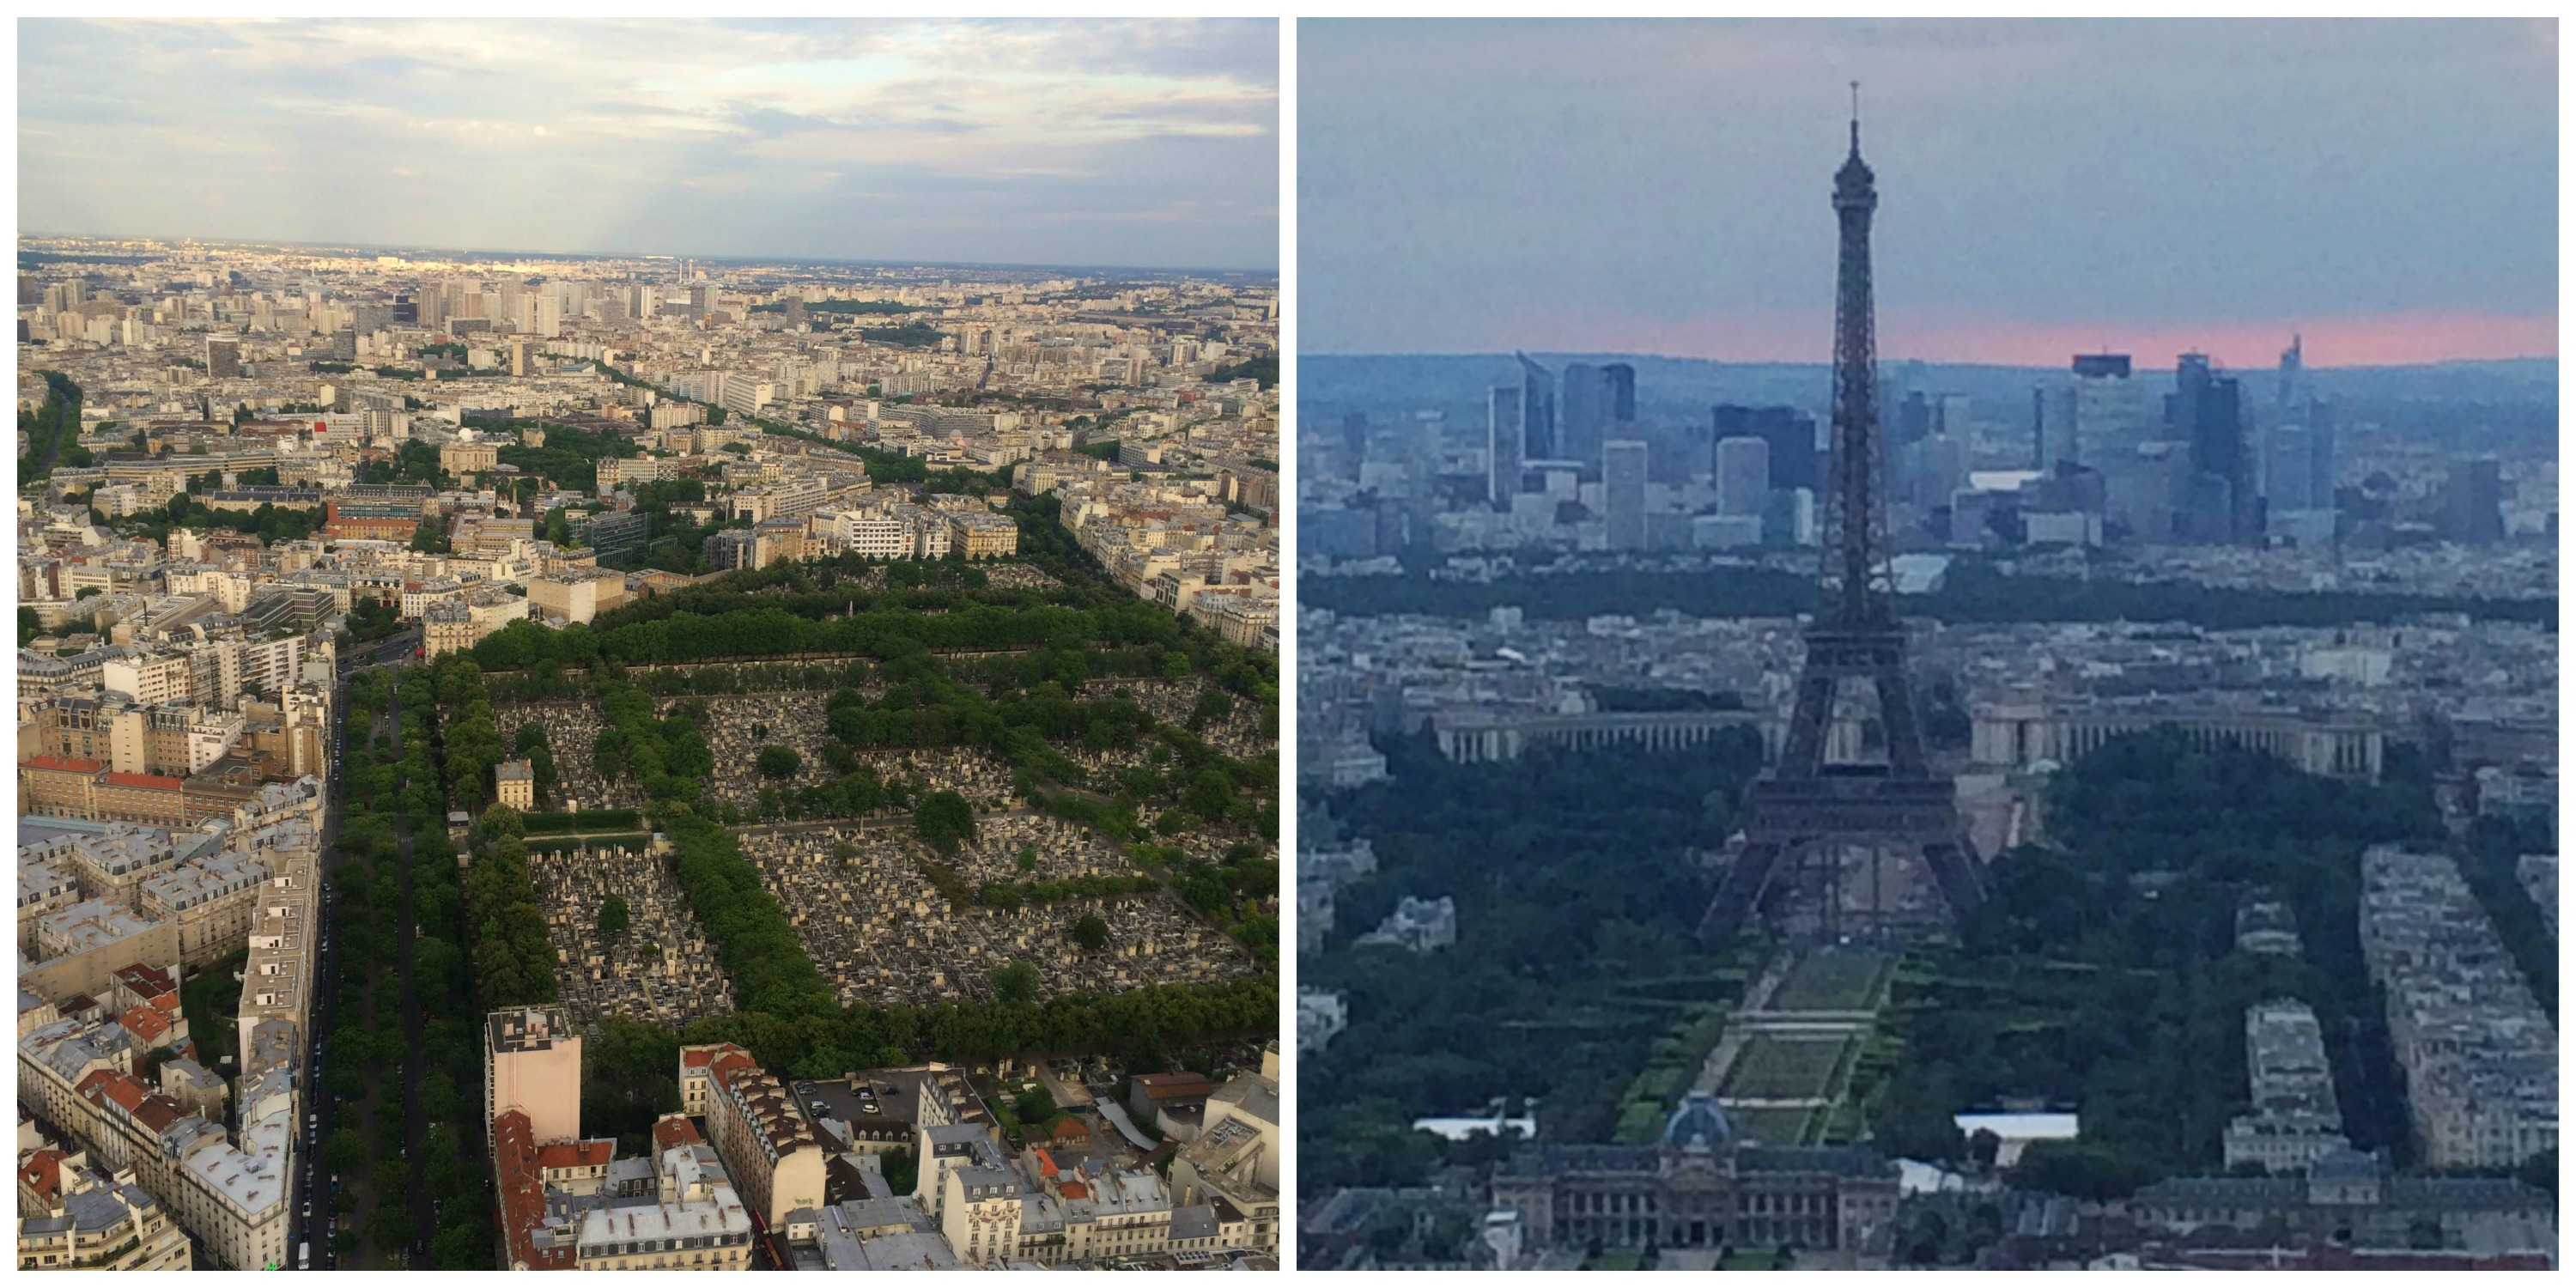 The View from Montparnasse 56